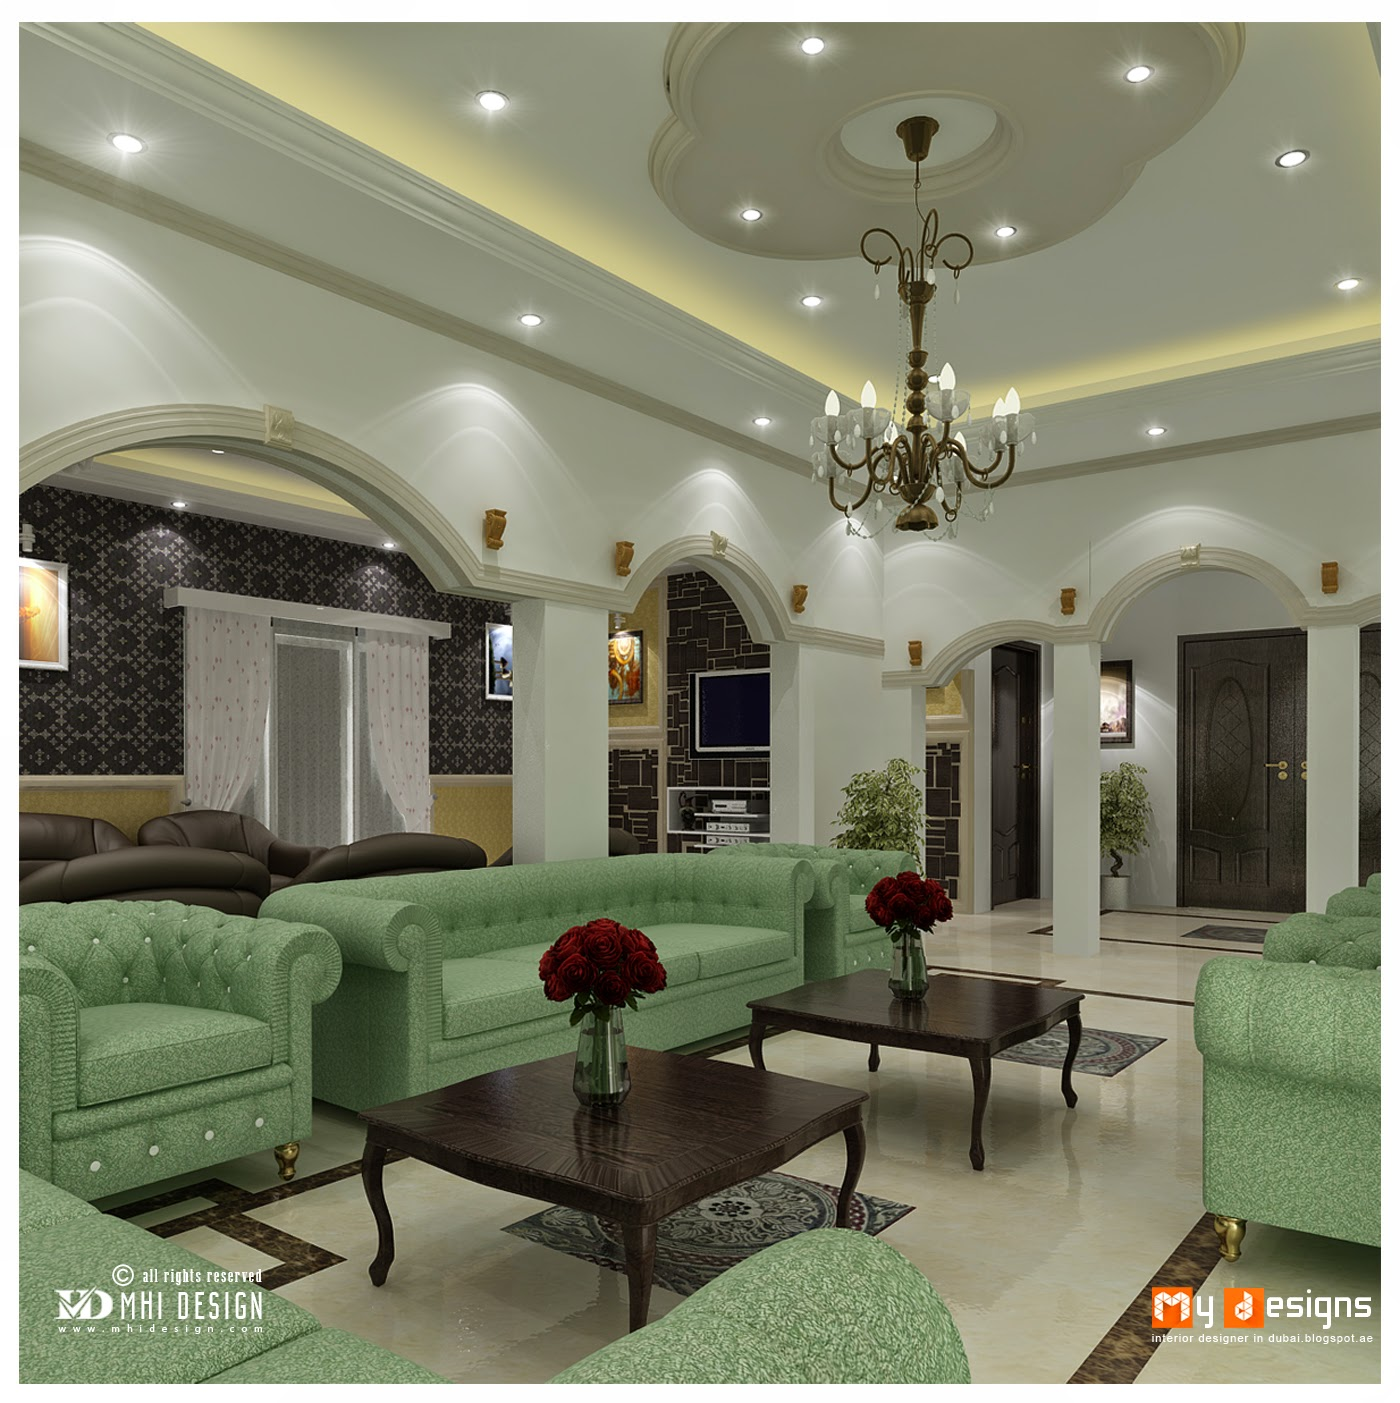 Office interior designs in dubai interior designer in for Villa interior design dubai